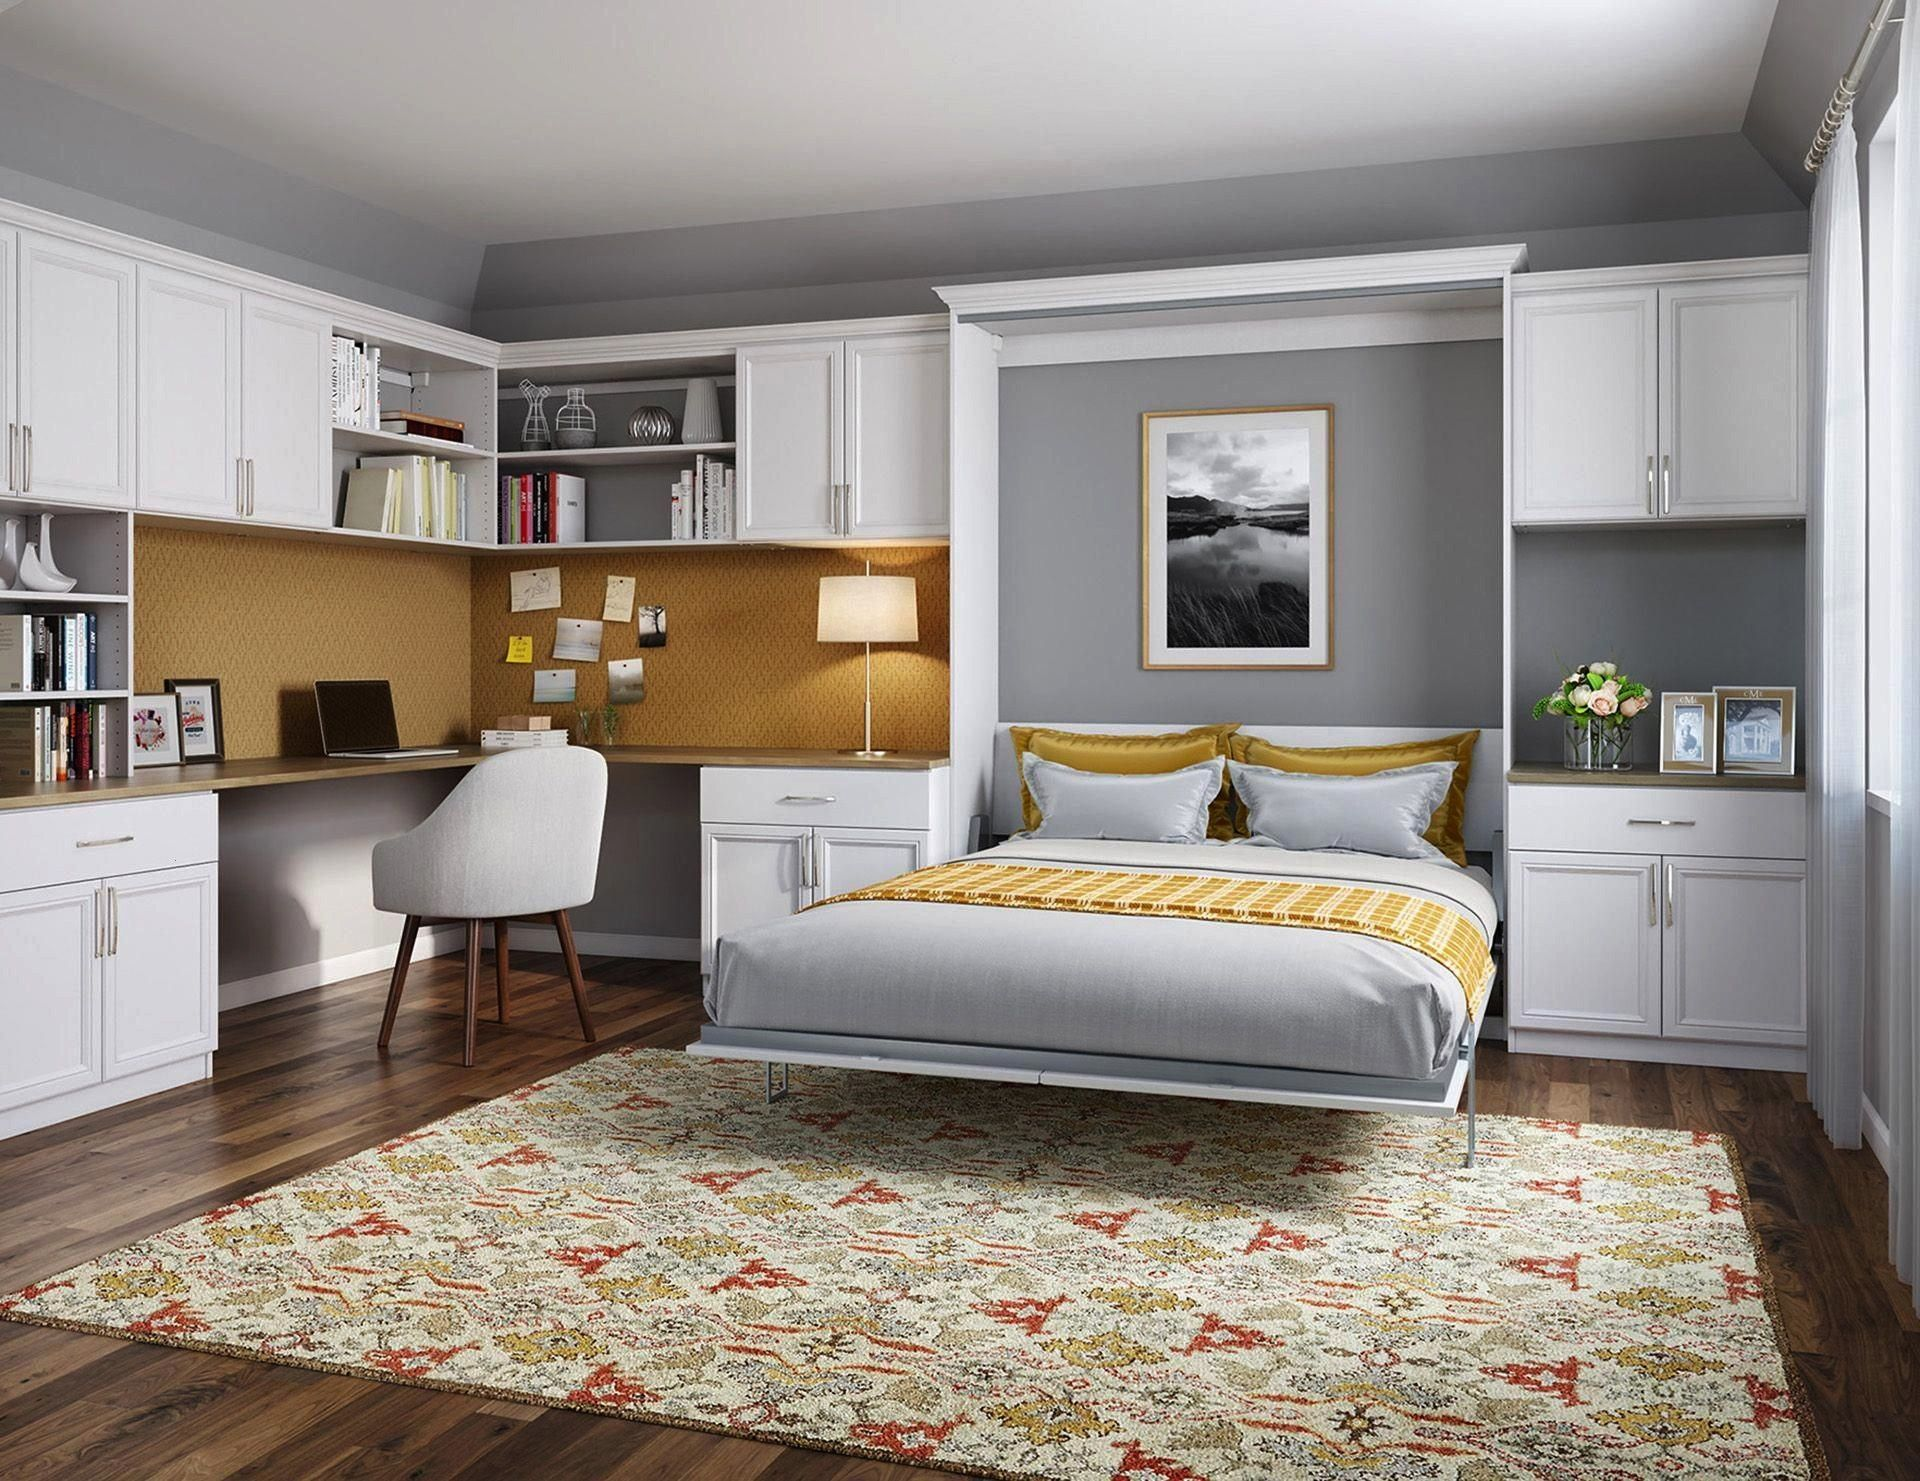 Murphy beds allow you to maximize your space by creating multifunction Highend Murphy beds allow you to maximize your space by creating multifunction Highend Murphy beds...